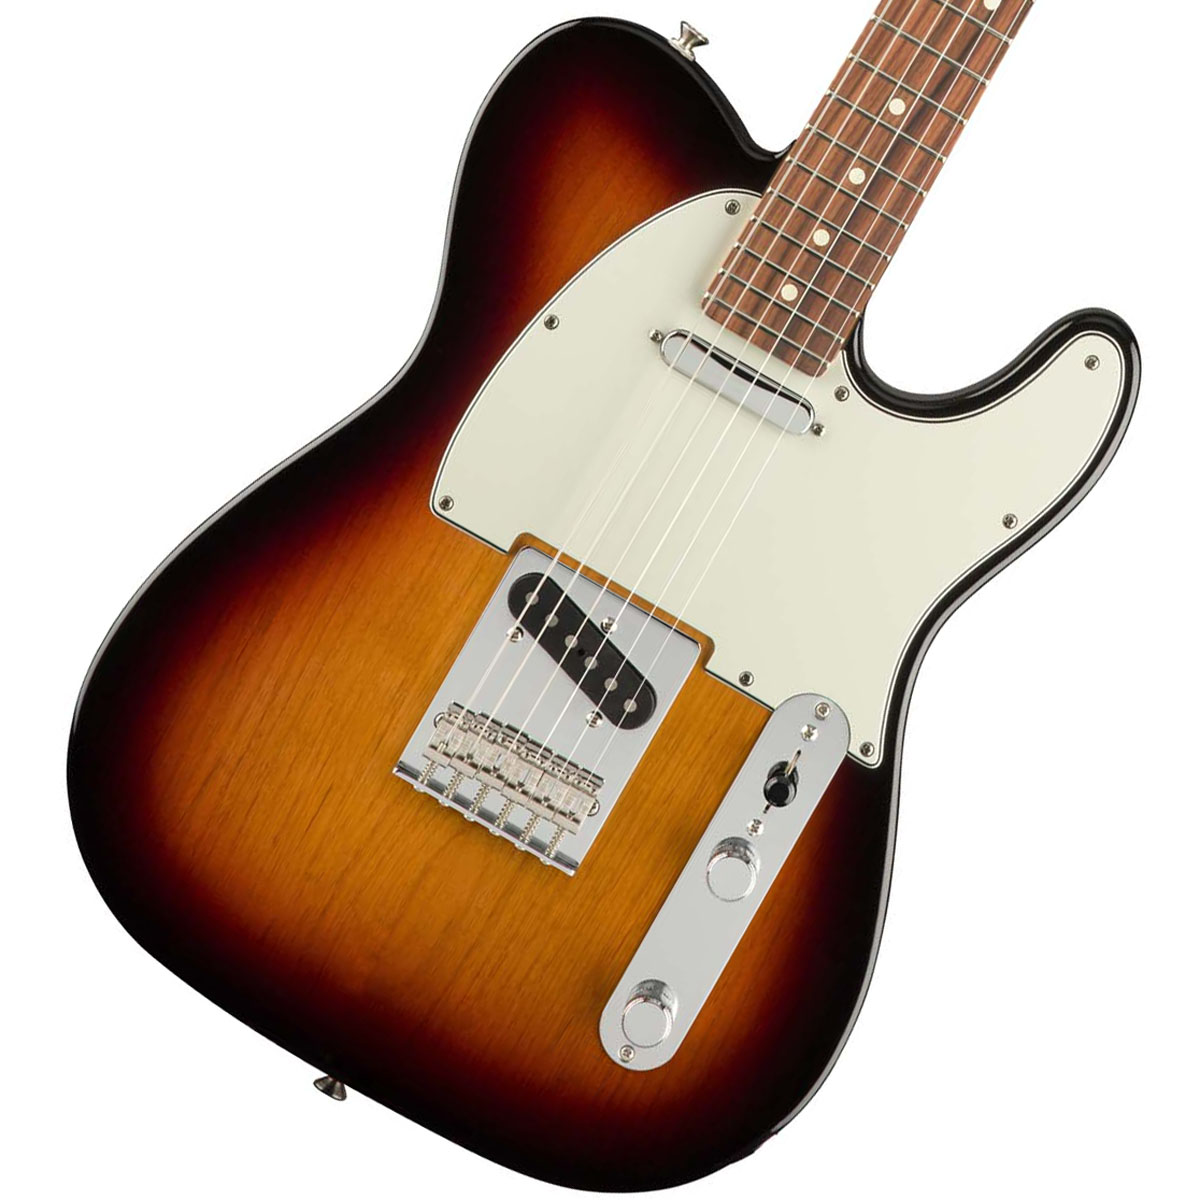 【タイムセール:29日12時まで】Fender / Player Series Telecaster 3 Color Sunburst Pau Ferro 【YRK】【新品特価】